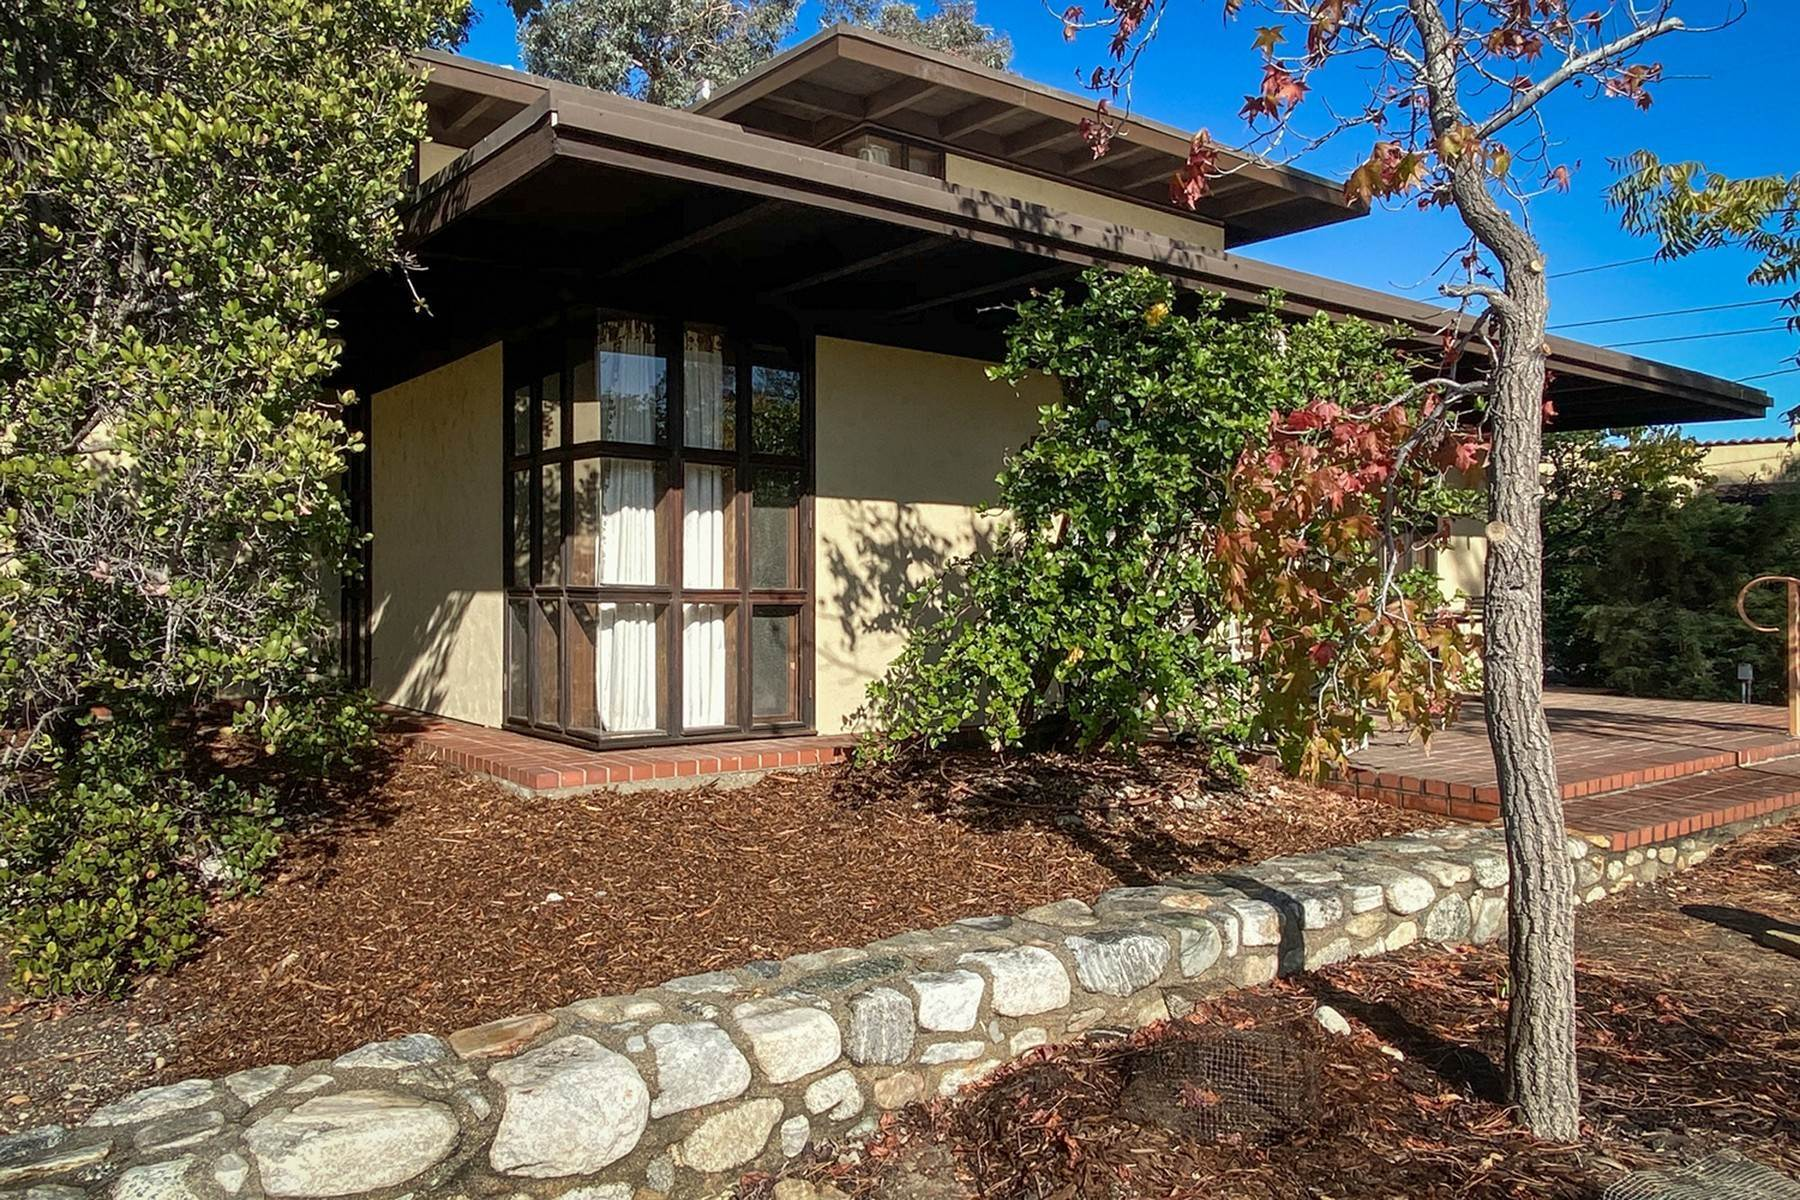 23. Single Family Homes for Sale at 190 E. Radcliffe Drive, Claremont, CA 91711 190 E. Radcliffe Drive Claremont, California 91711 United States